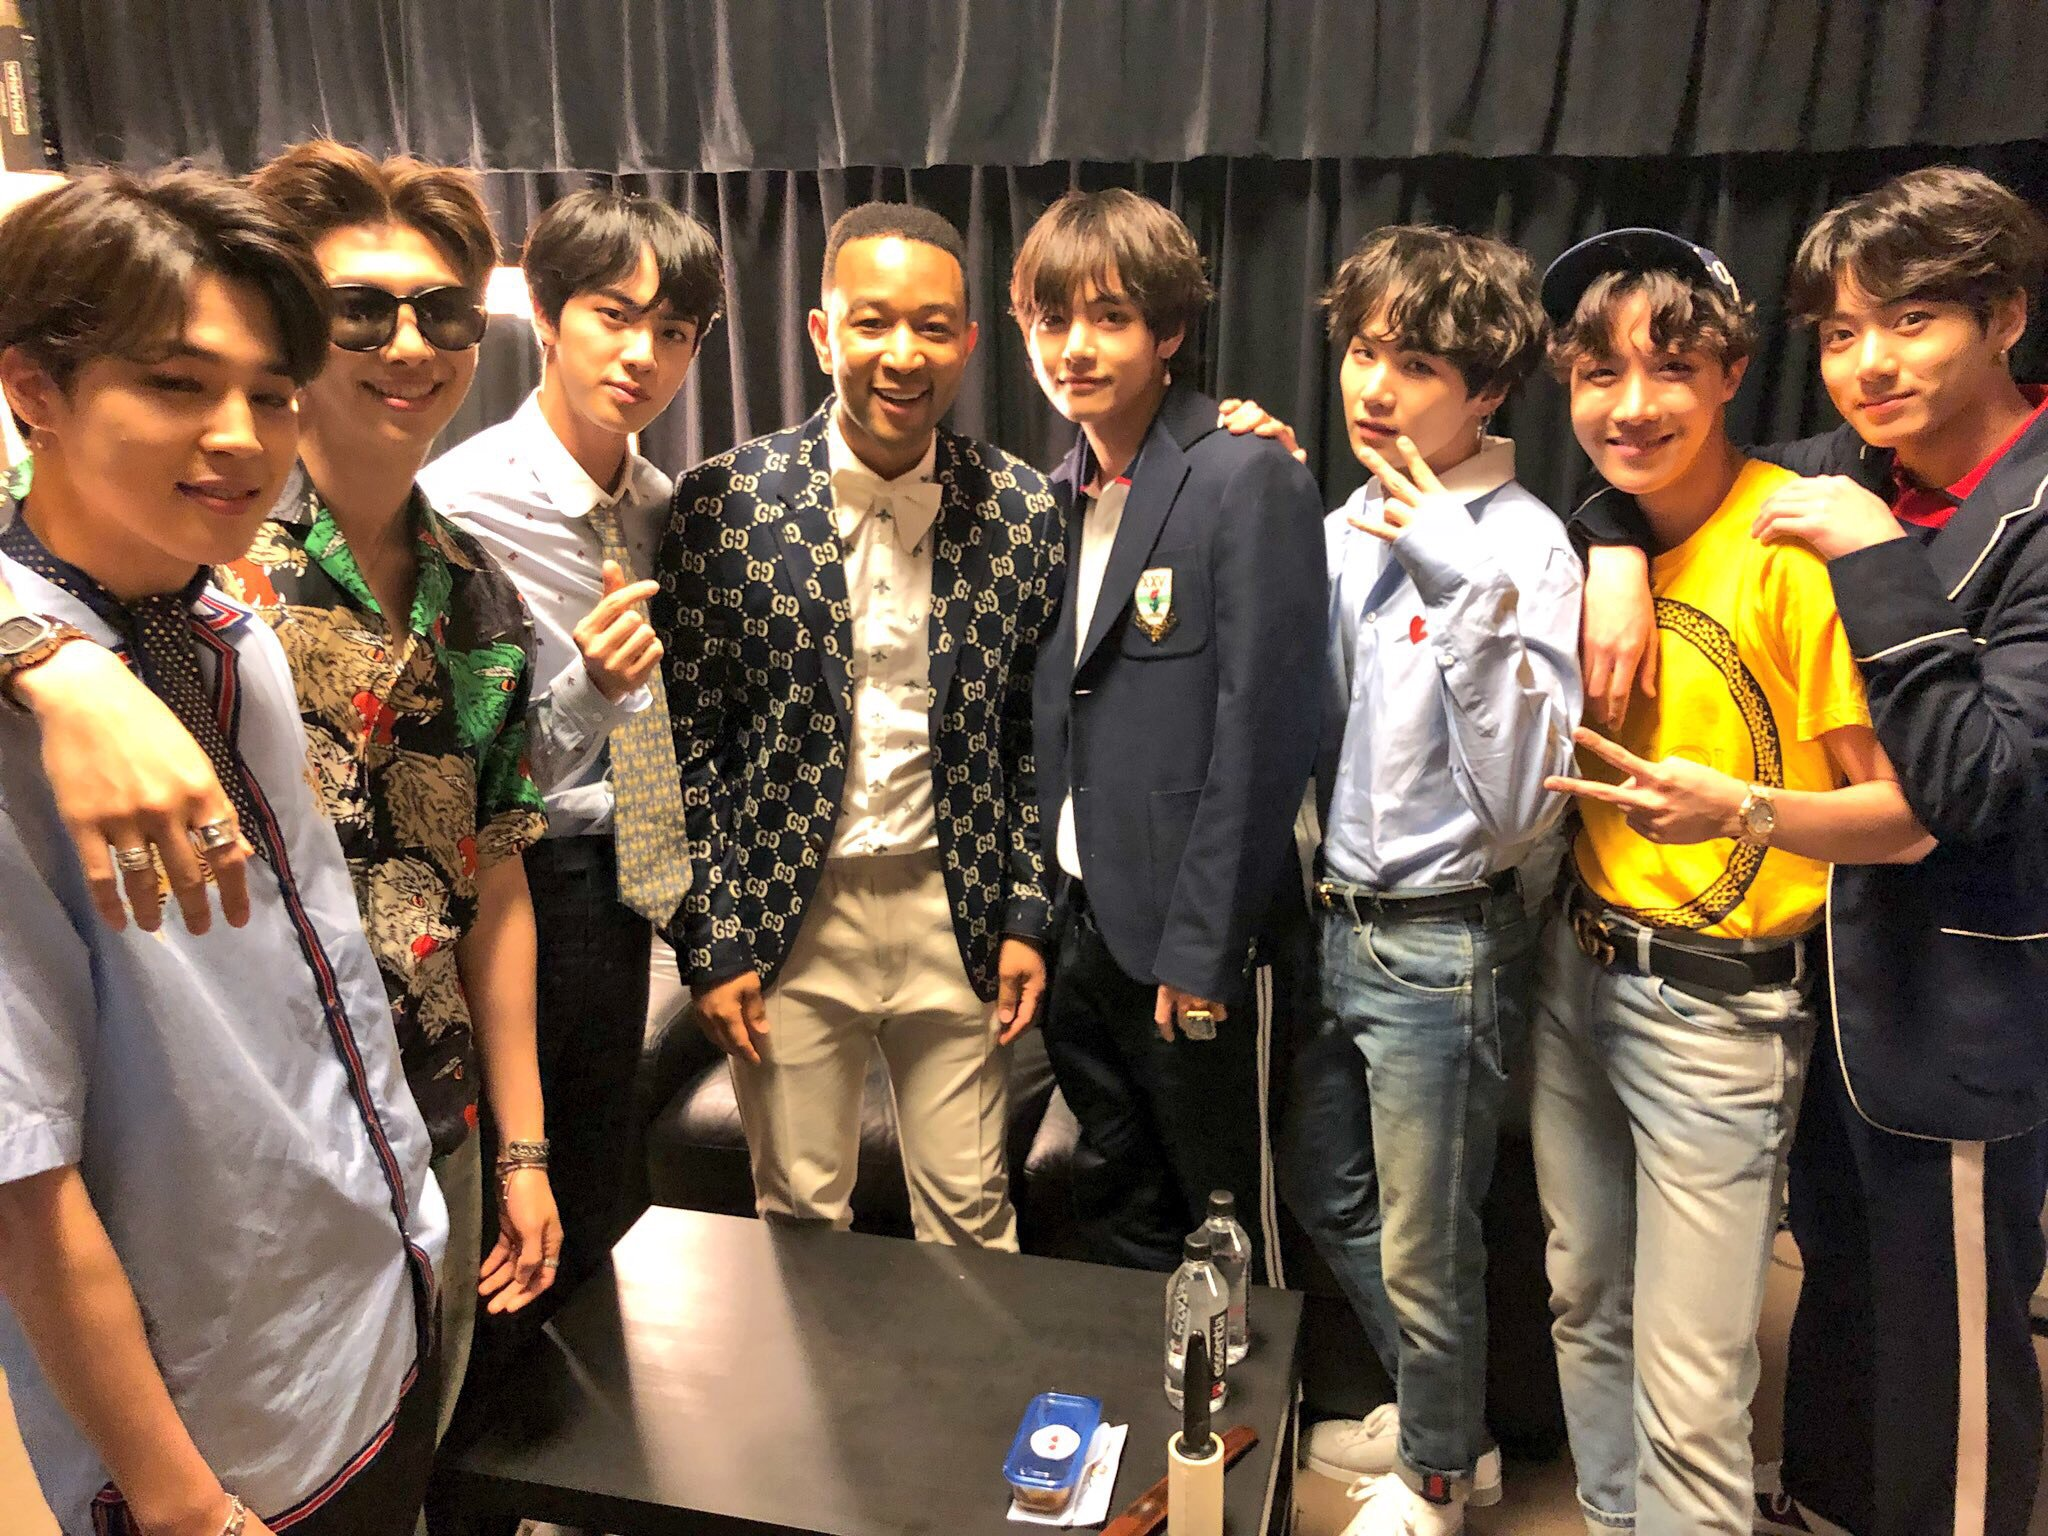 Backstage at the #BBMAs2018 with @BTS_twt https://t.co/6zLl1uCKgZ